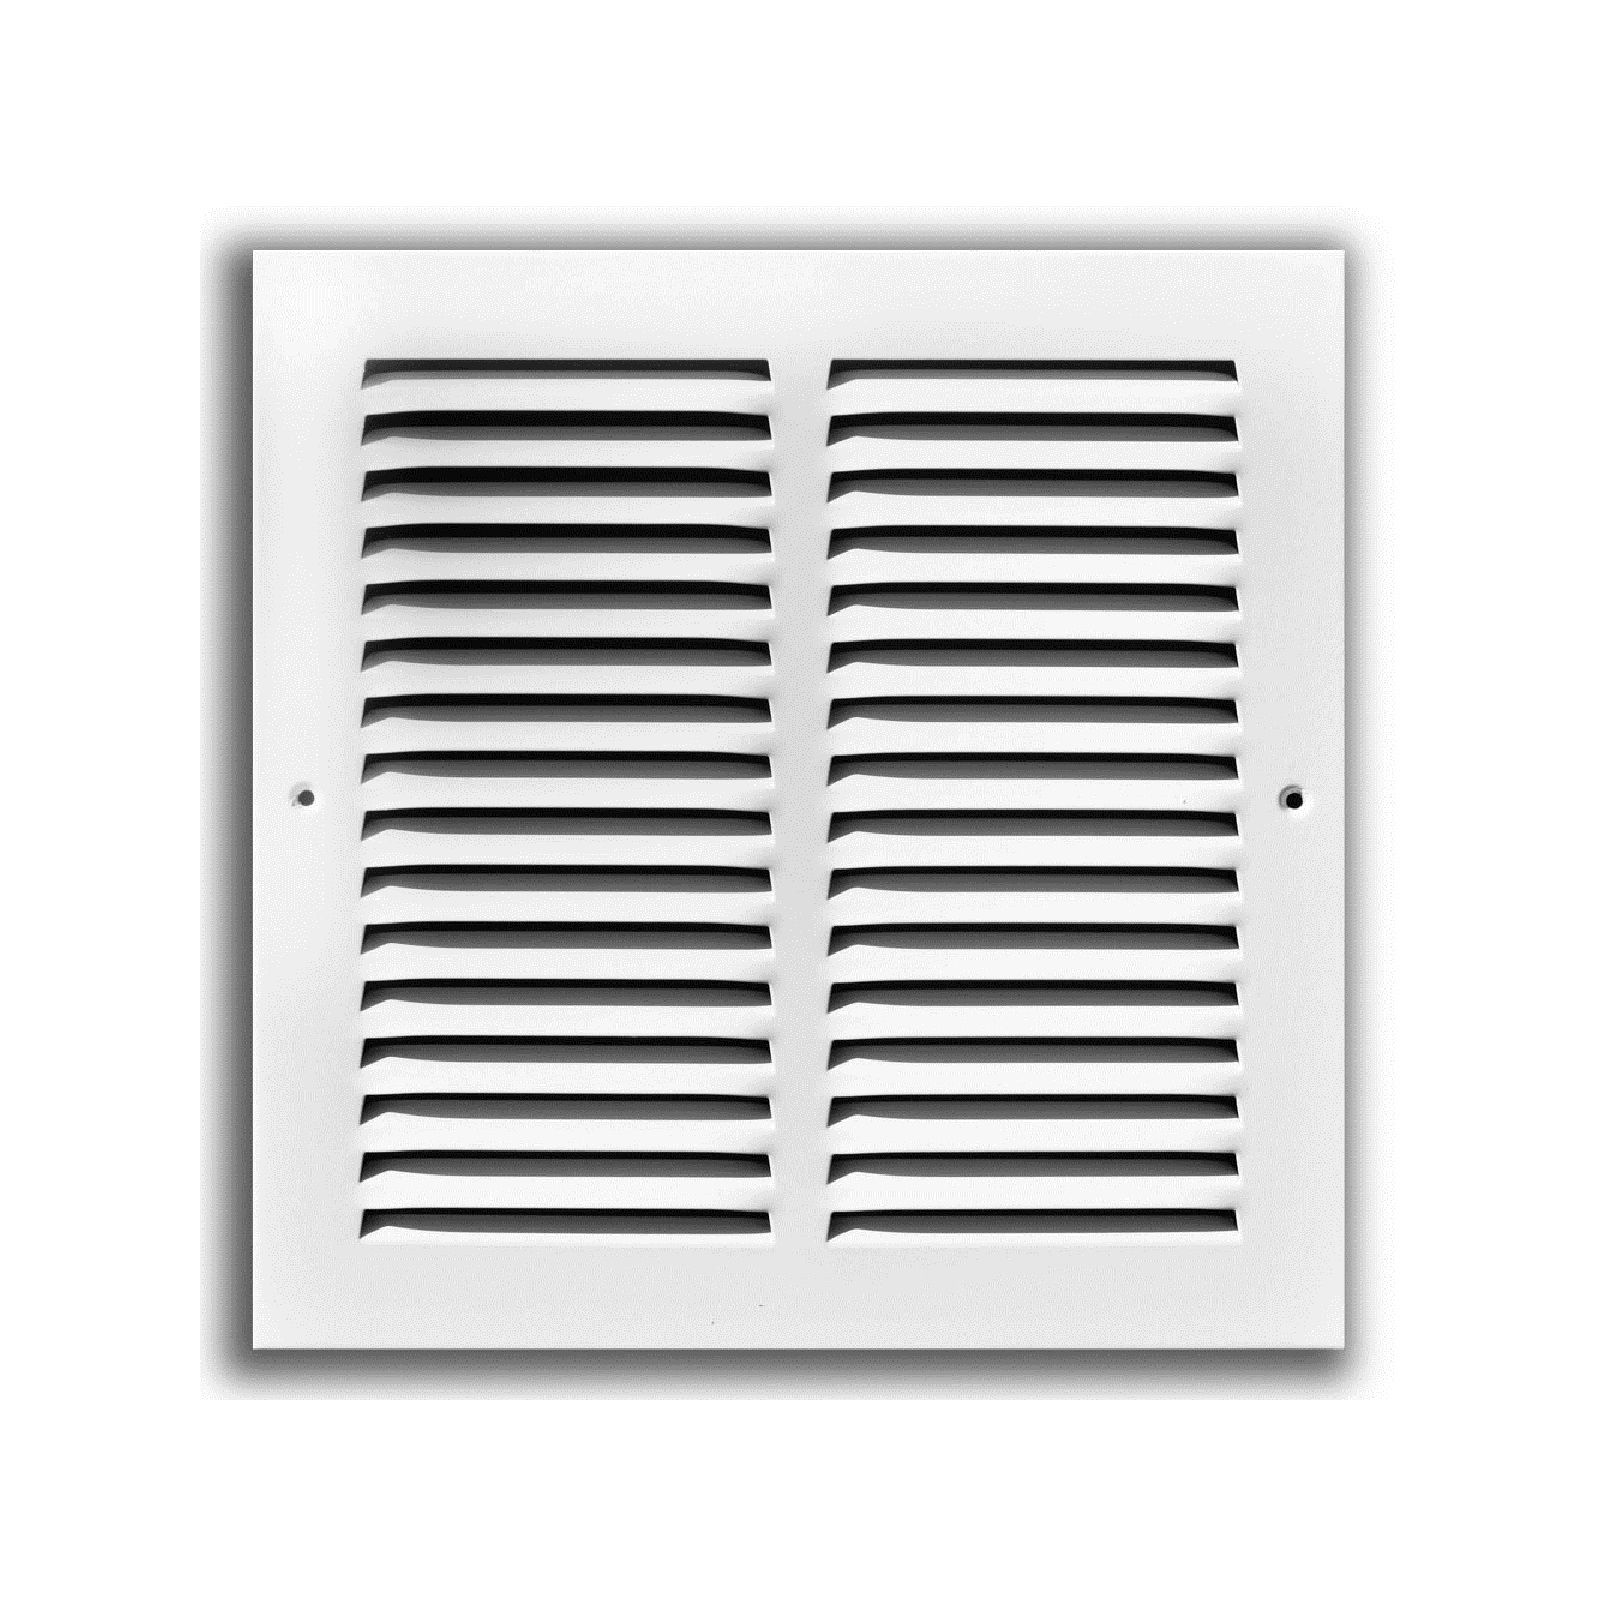 "TRUaire 170 36X18 - Steel Return Air Grille - 1/2"" Spaced Fin, White, 36"" X 18"""